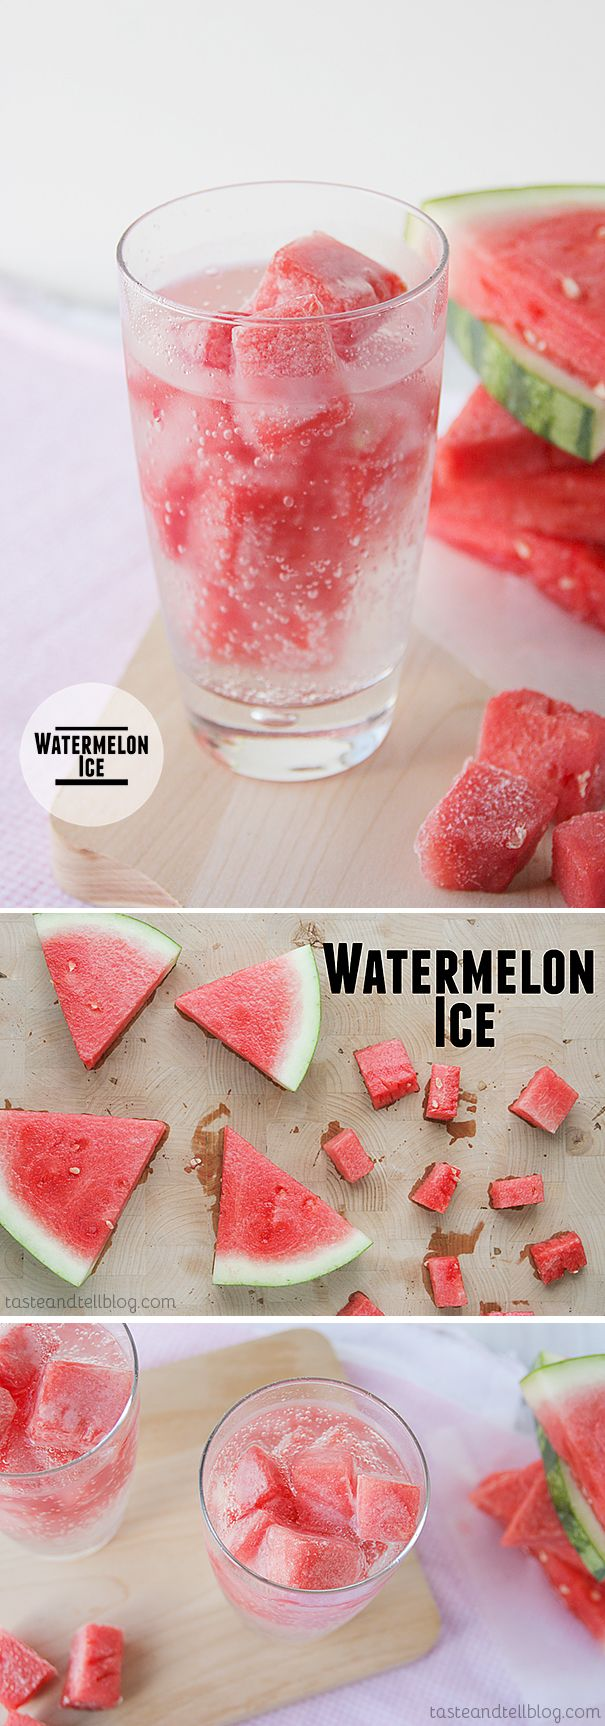 Watermelon Ice - Jazz up your summer drink with ice cubes – made of watermelon!